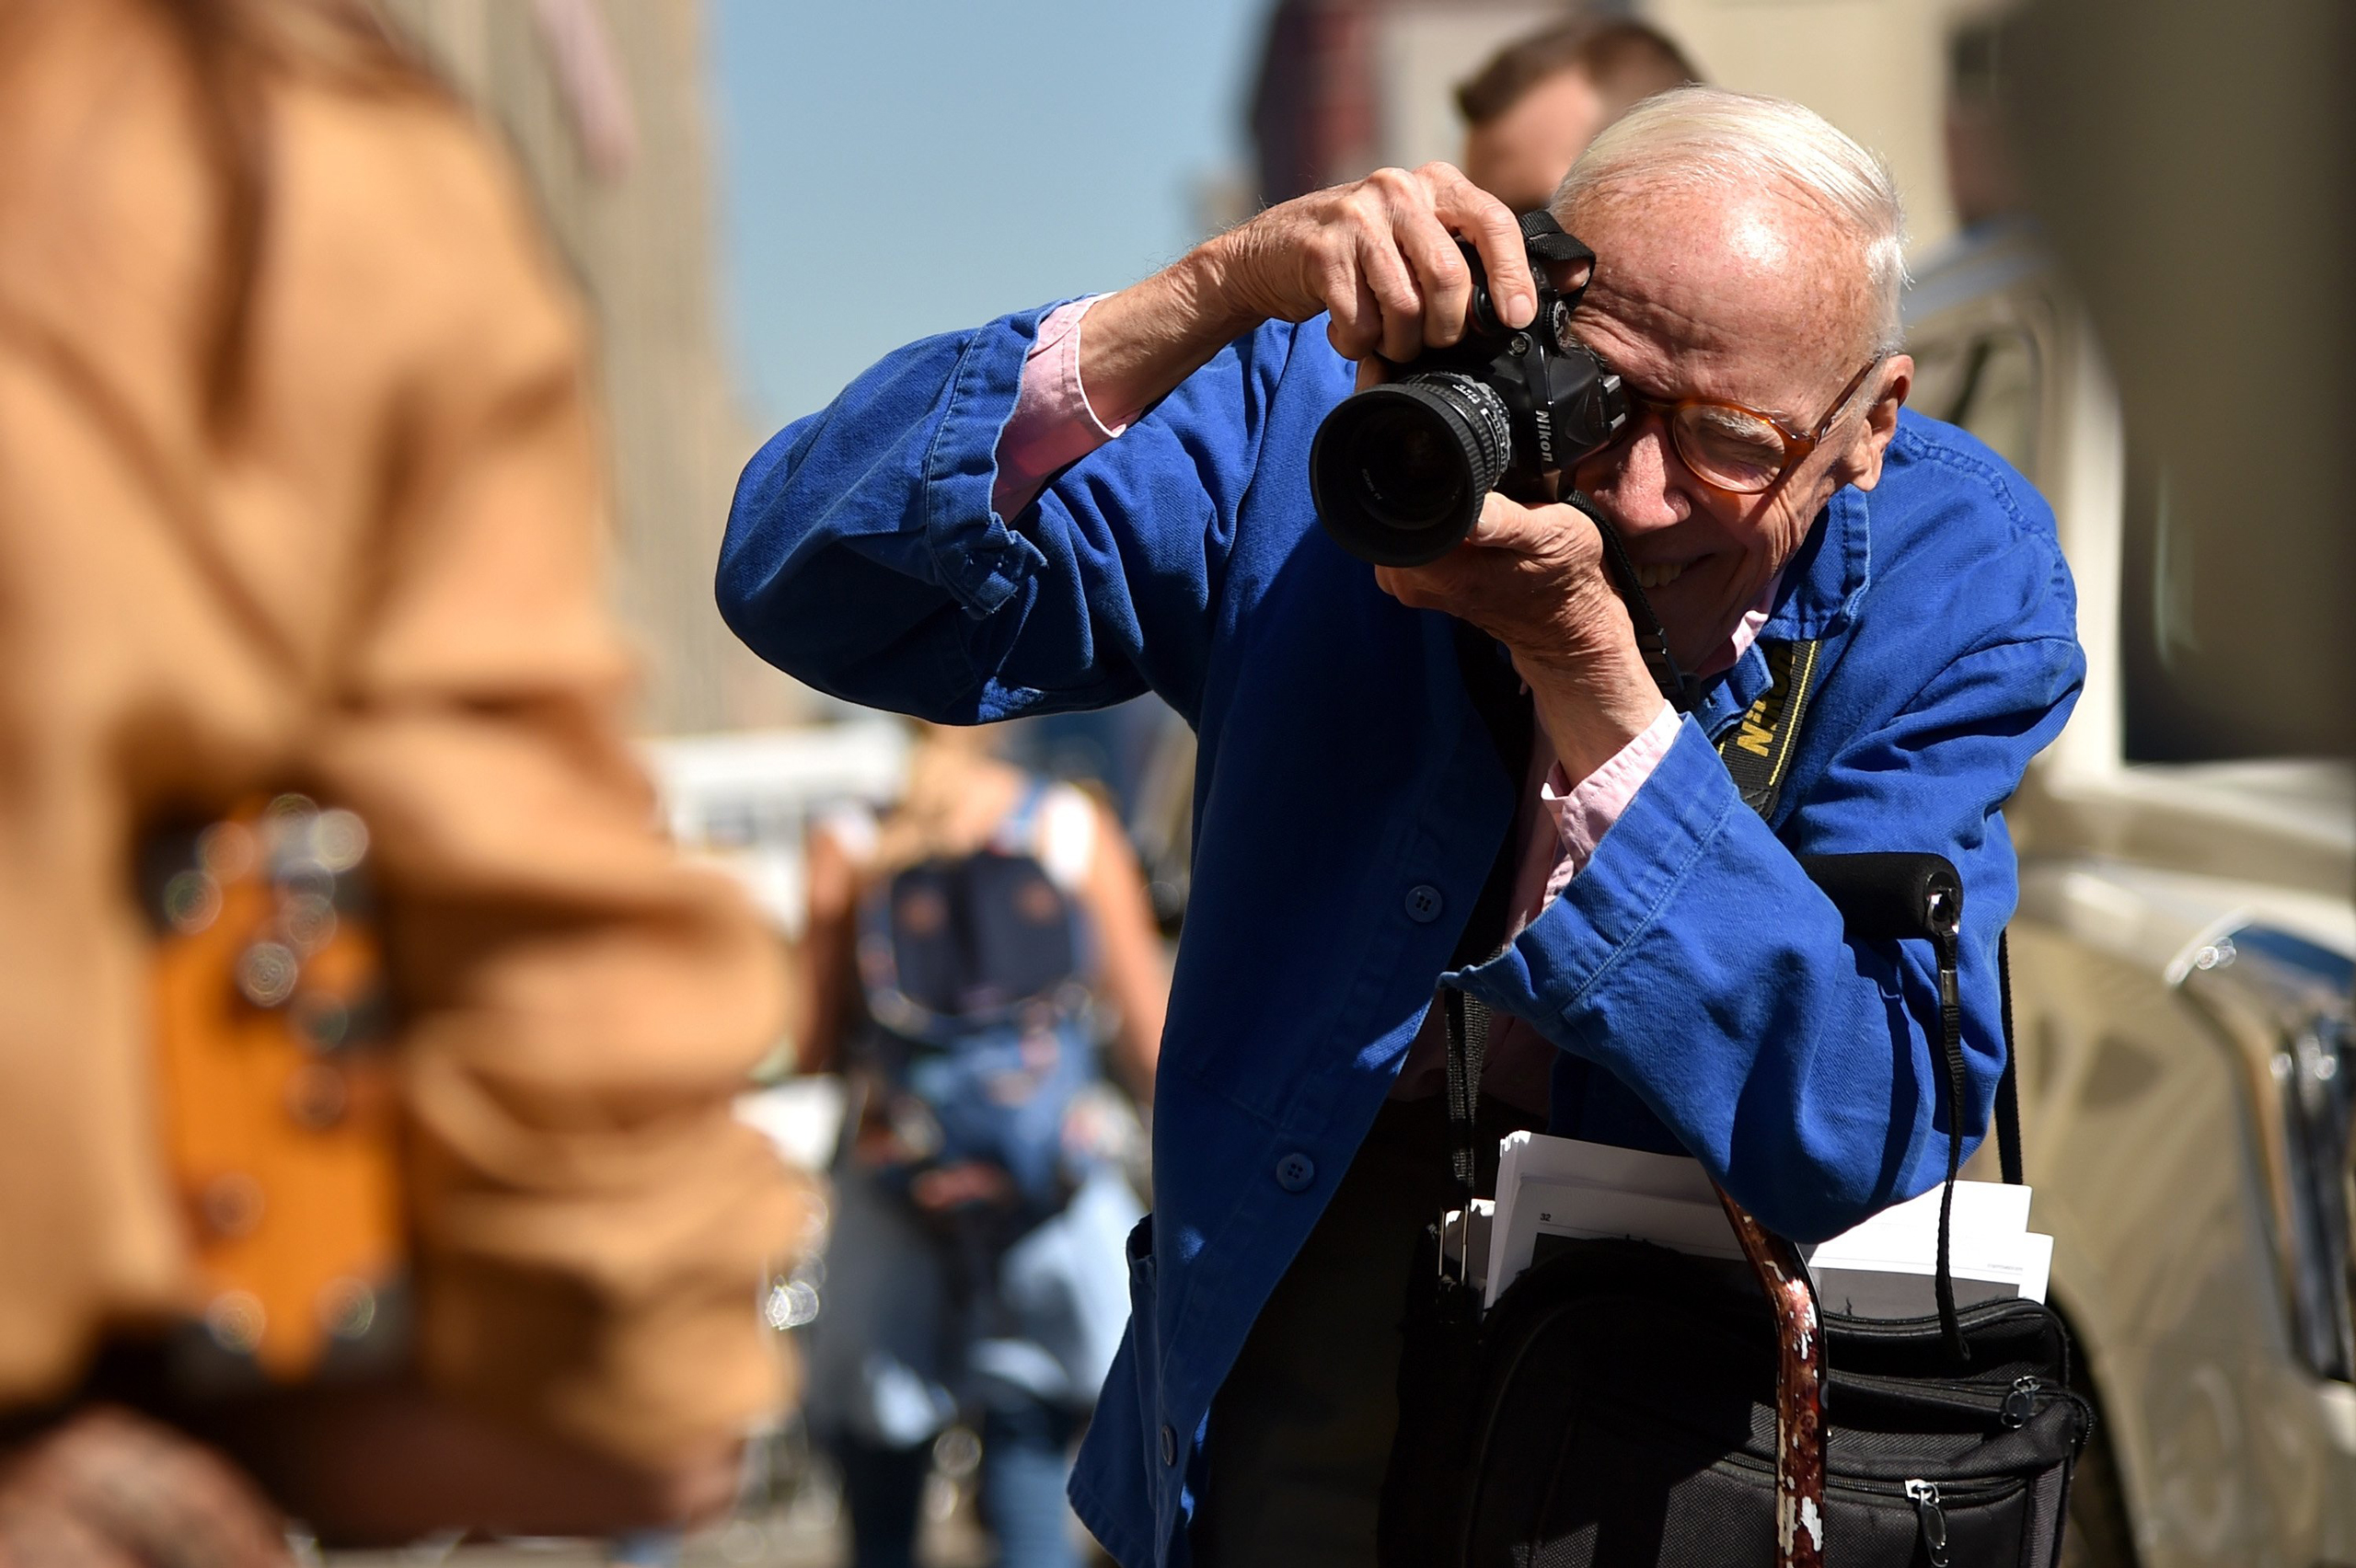 Bill Cunningham photographs guests leaving Ralph Lauren Spring 2016 during New York Fashion Week: The Shows at Skylight Clarkson Sq in New York City on September 17, 2015.